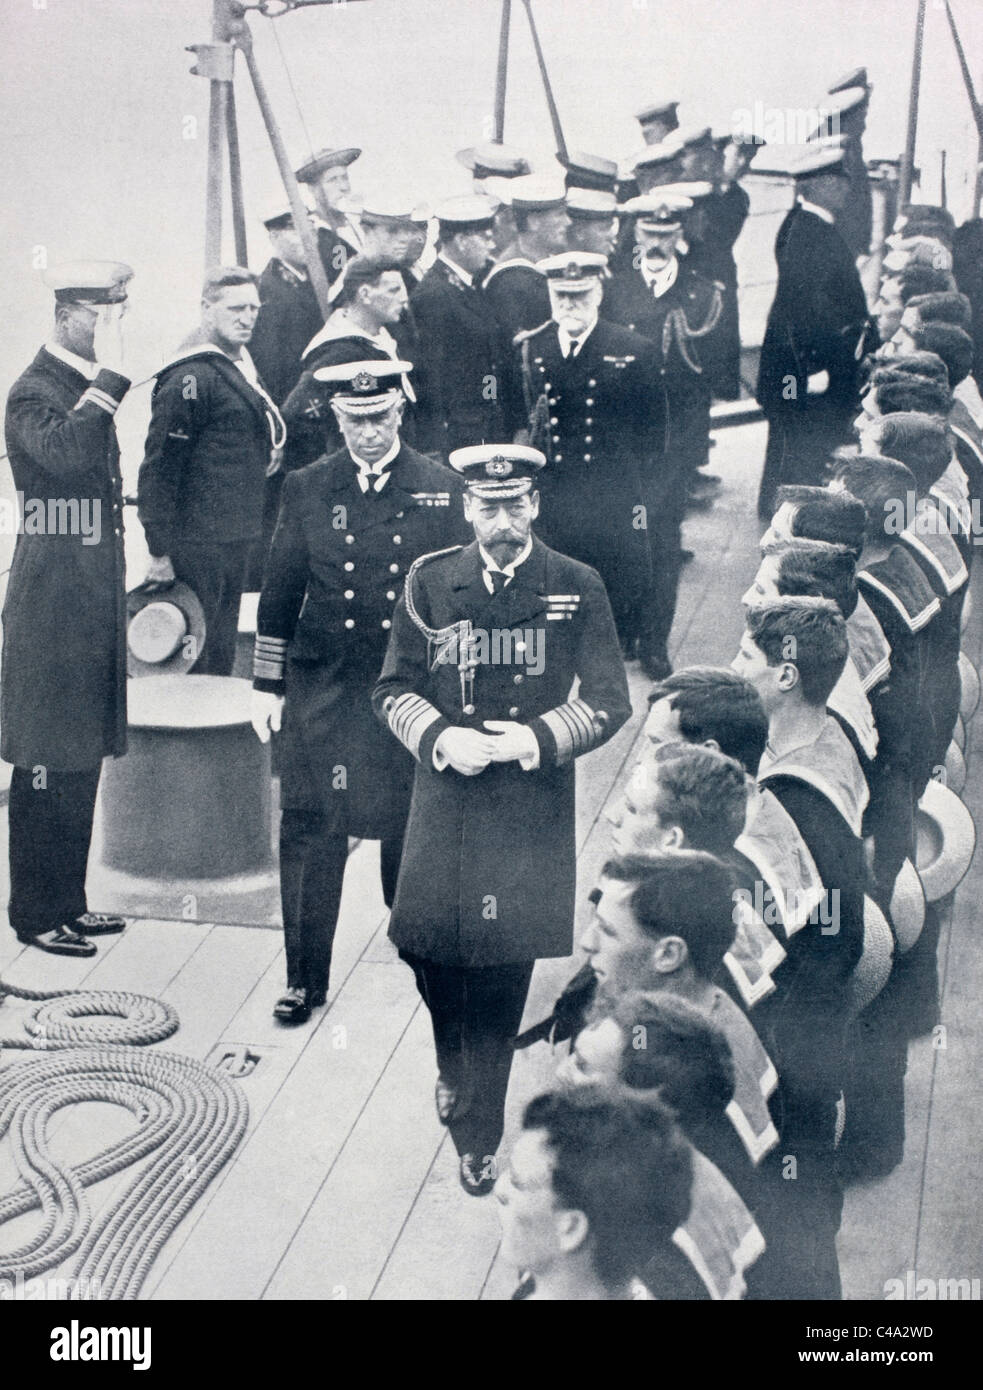 King George V of England reviewing the crew of the battleship Iron Duke in 1914. - Stock Image